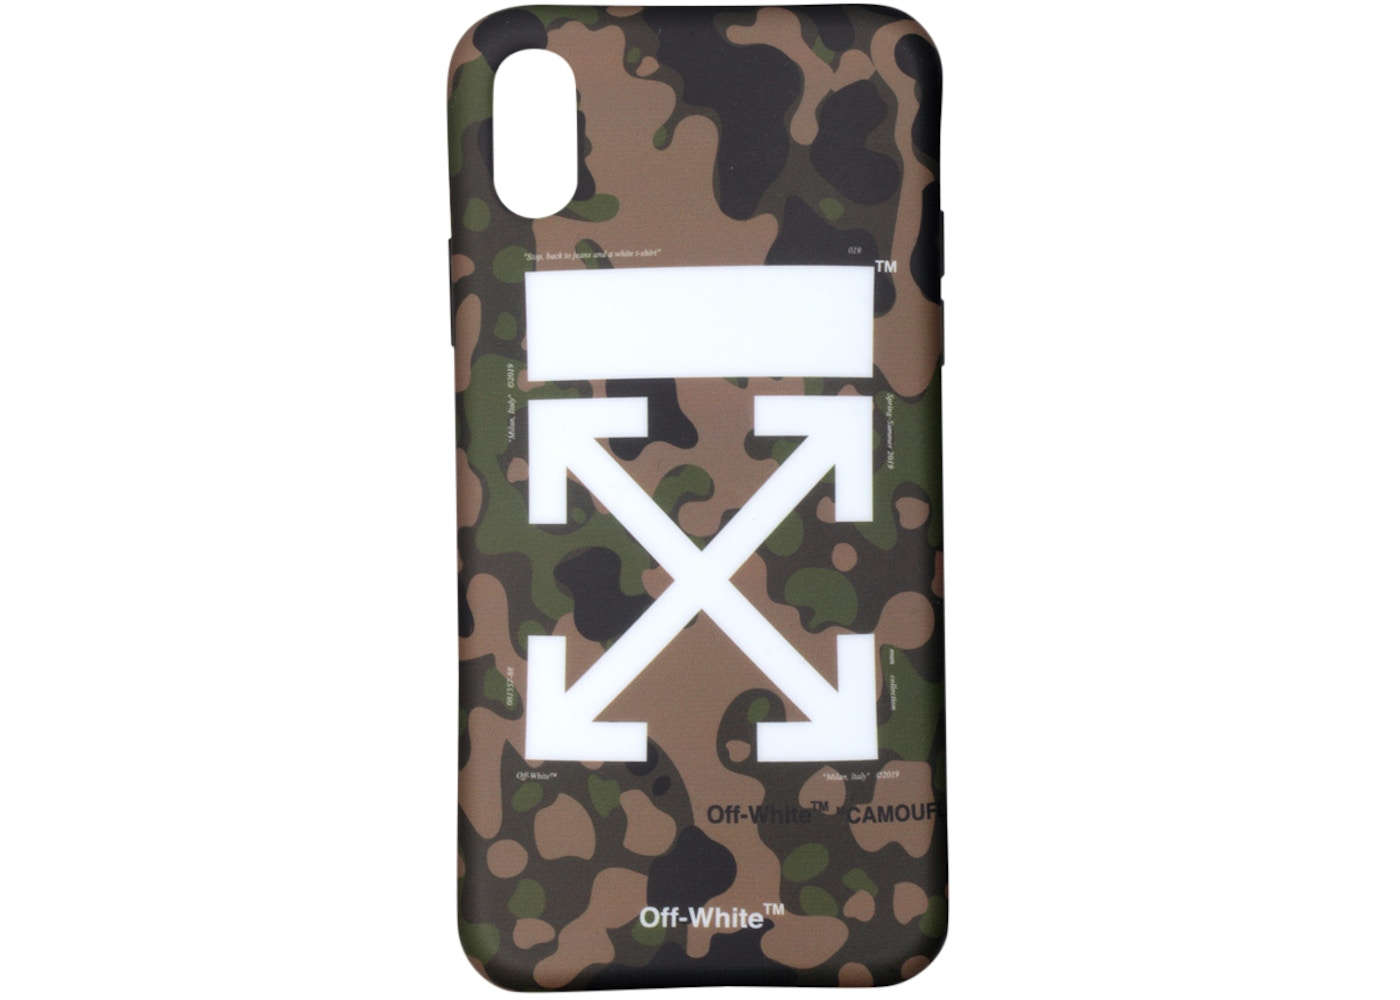 finest selection 349b2 06208 OFF-WHITE Camouflage iPhone X Case (SS19) Camo/White